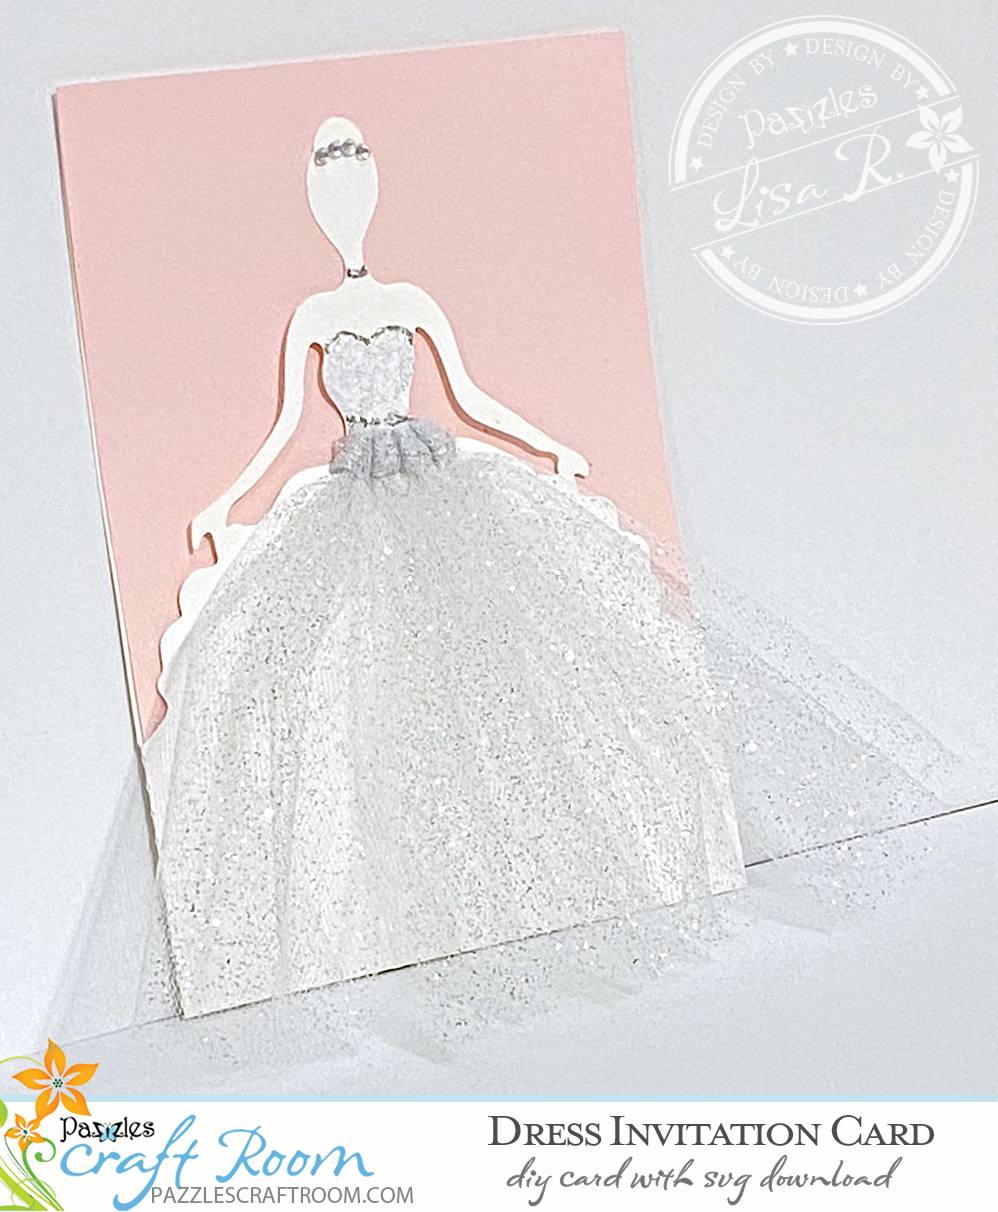 Pazzles DIY Dress Invitation Card with instant SVG download. Compatible with all major electronic cutters including Pazzles Inspiration, Cricut, and Silhouette Cameo. Design by Lisa Reyna.